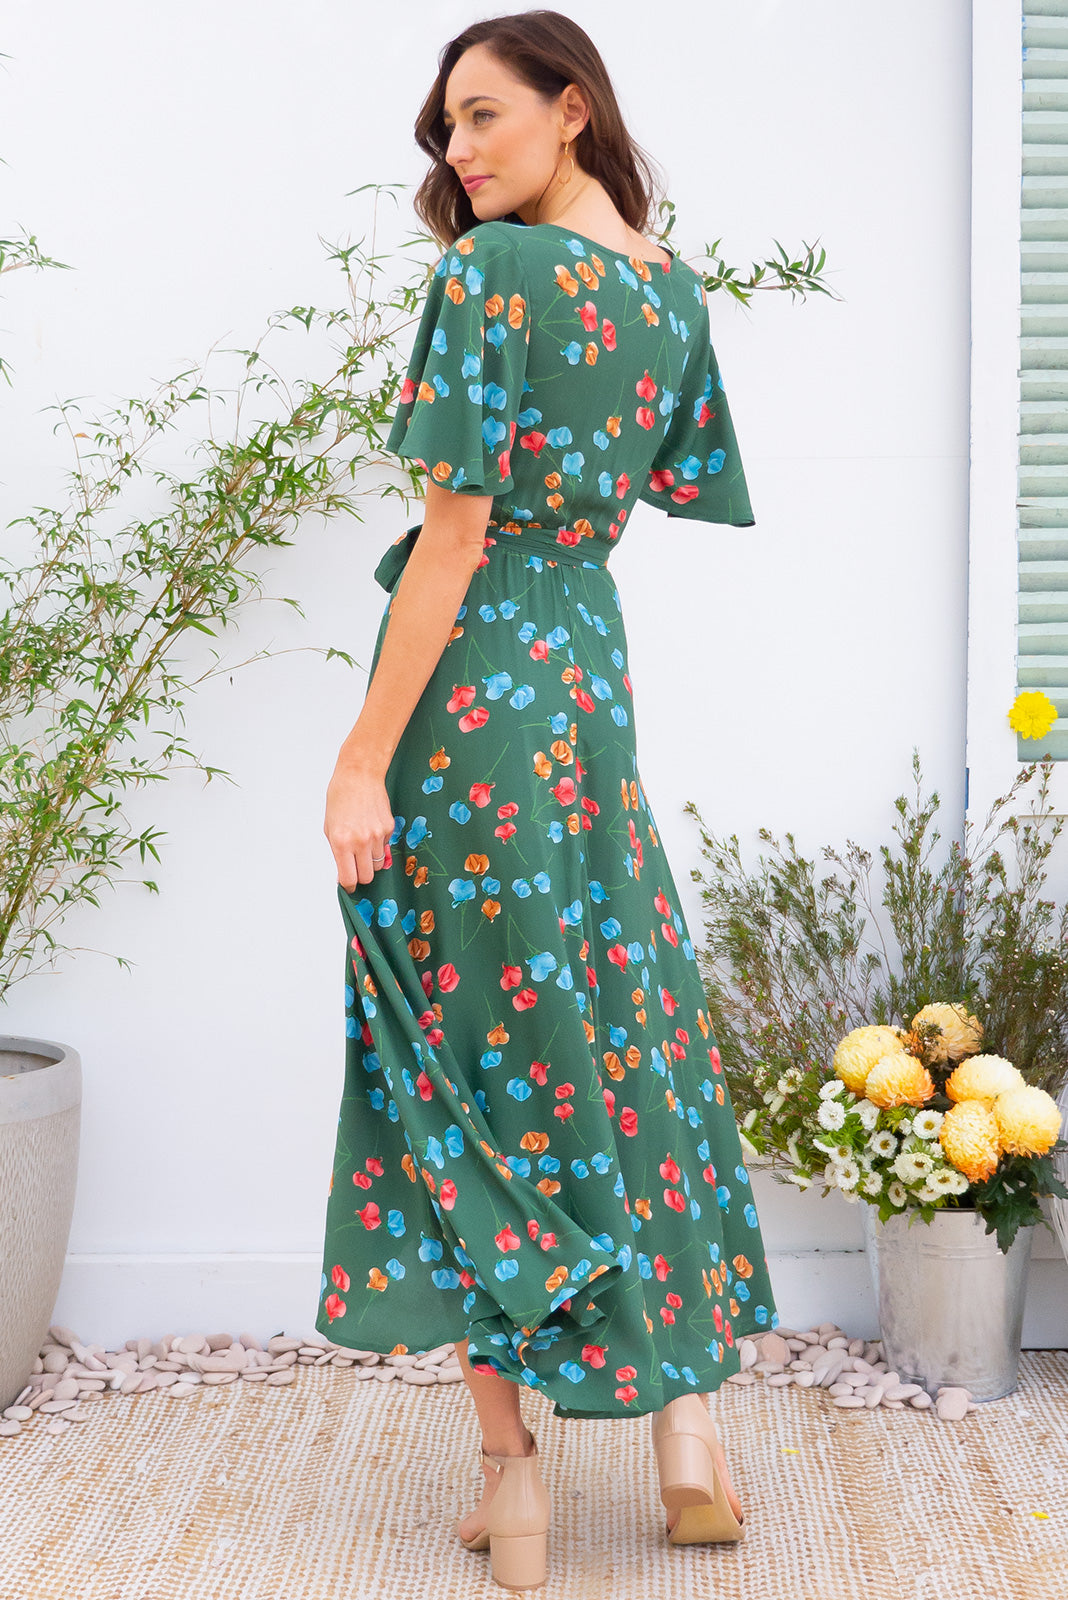 Penny Green Poppies Maxi Wrap dress with flutter sleeves in a leaf green with a poppy floral inspired print on 100% rayon